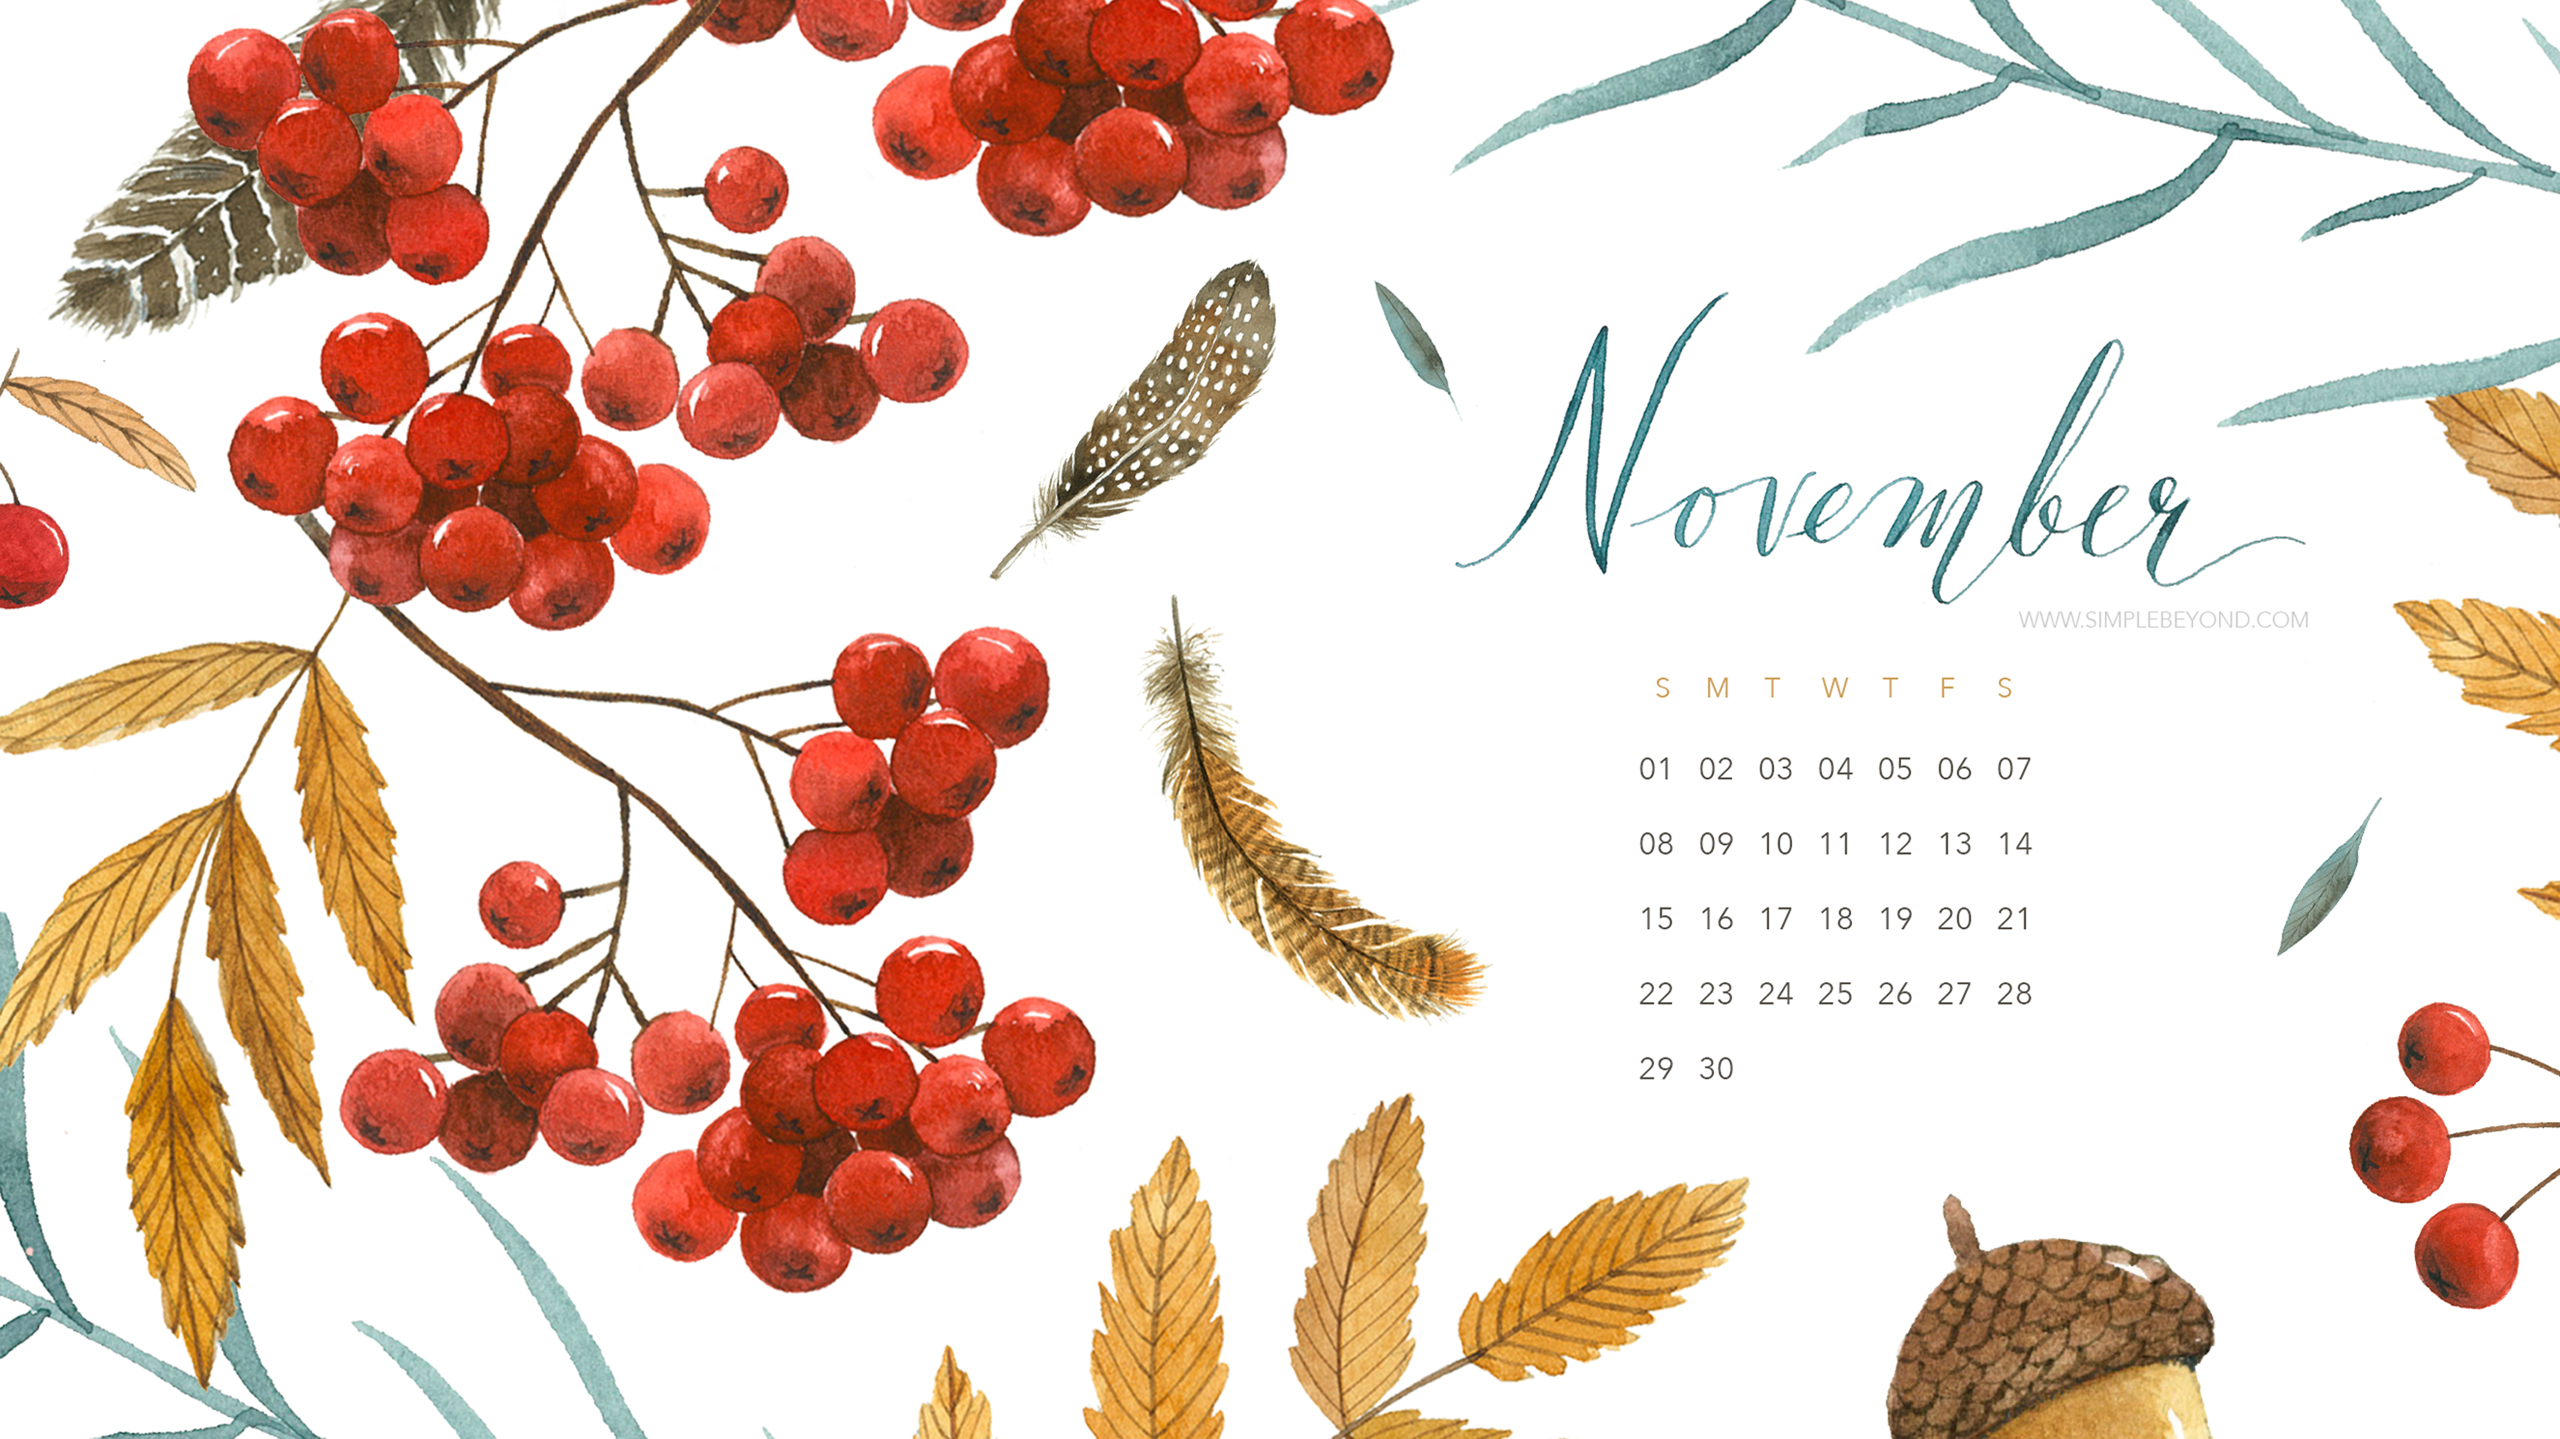 1000+ Images About Calendars On Pinterest